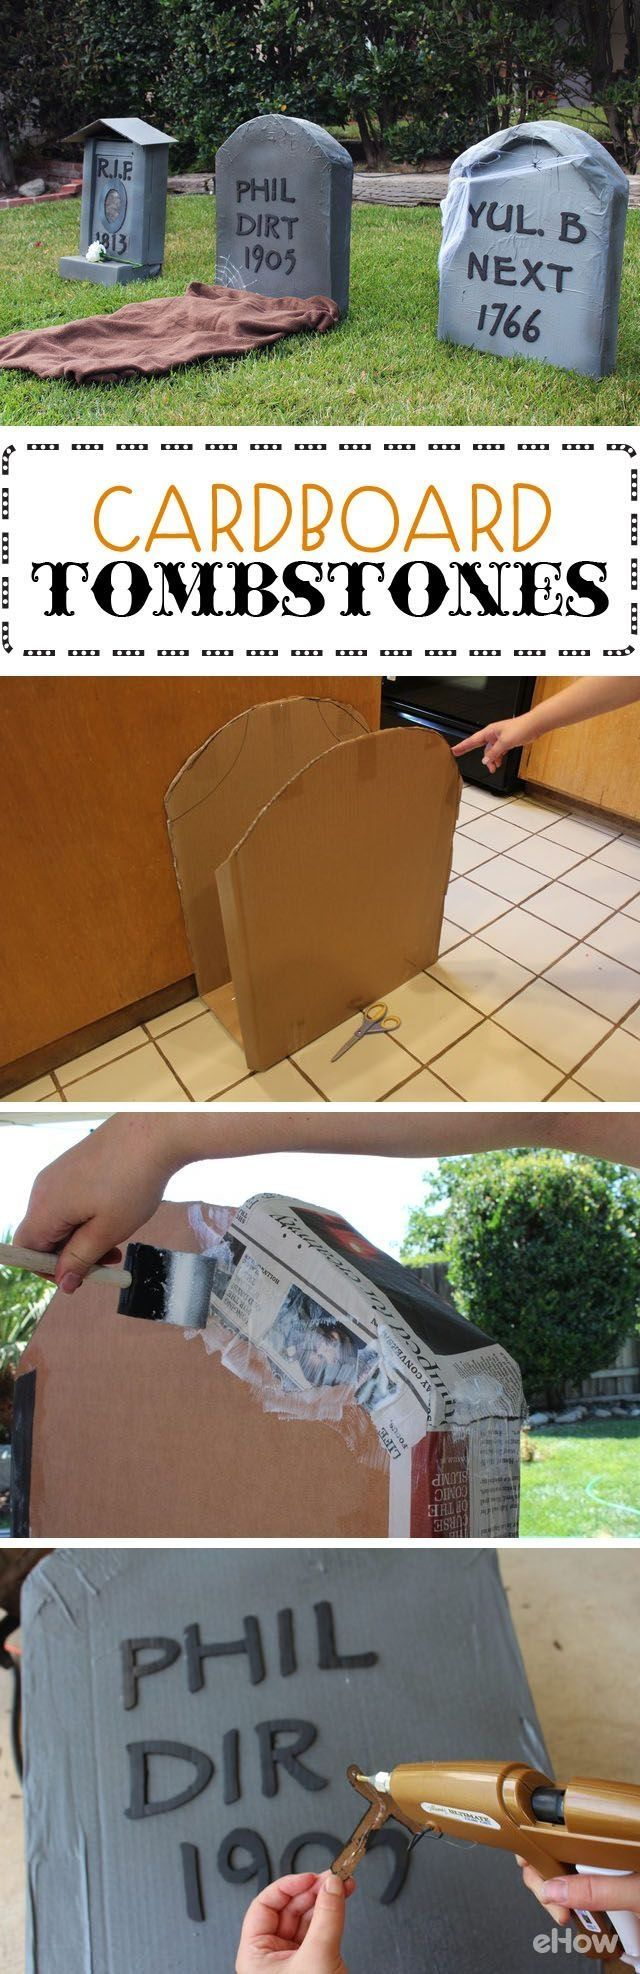 DIY Halloween Cardboard Tombstones Pictures, Photos, and Images for Facebook, Tumblr, Pinterest, and Twitter